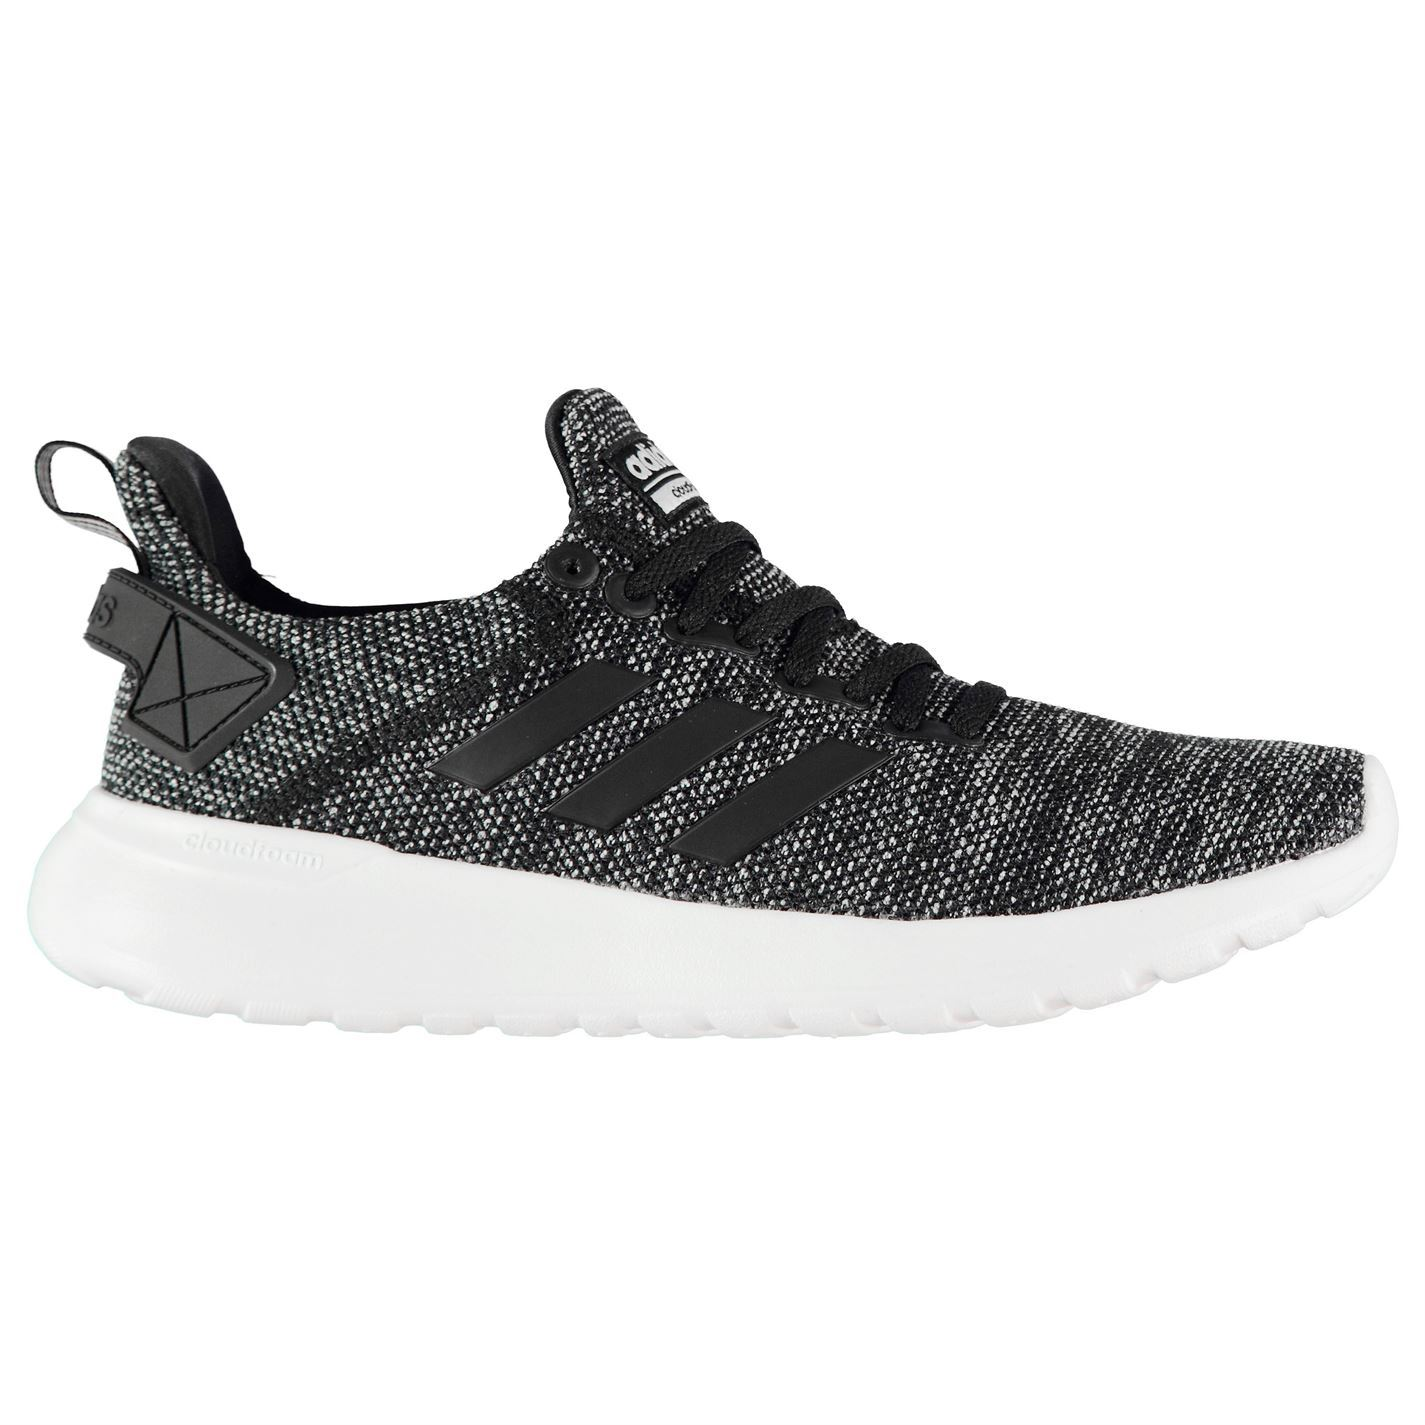 adidas Cloudfoam Lite Racer BYD Trainers Mens Black White Sports Shoes  Sneakers f28e667d0